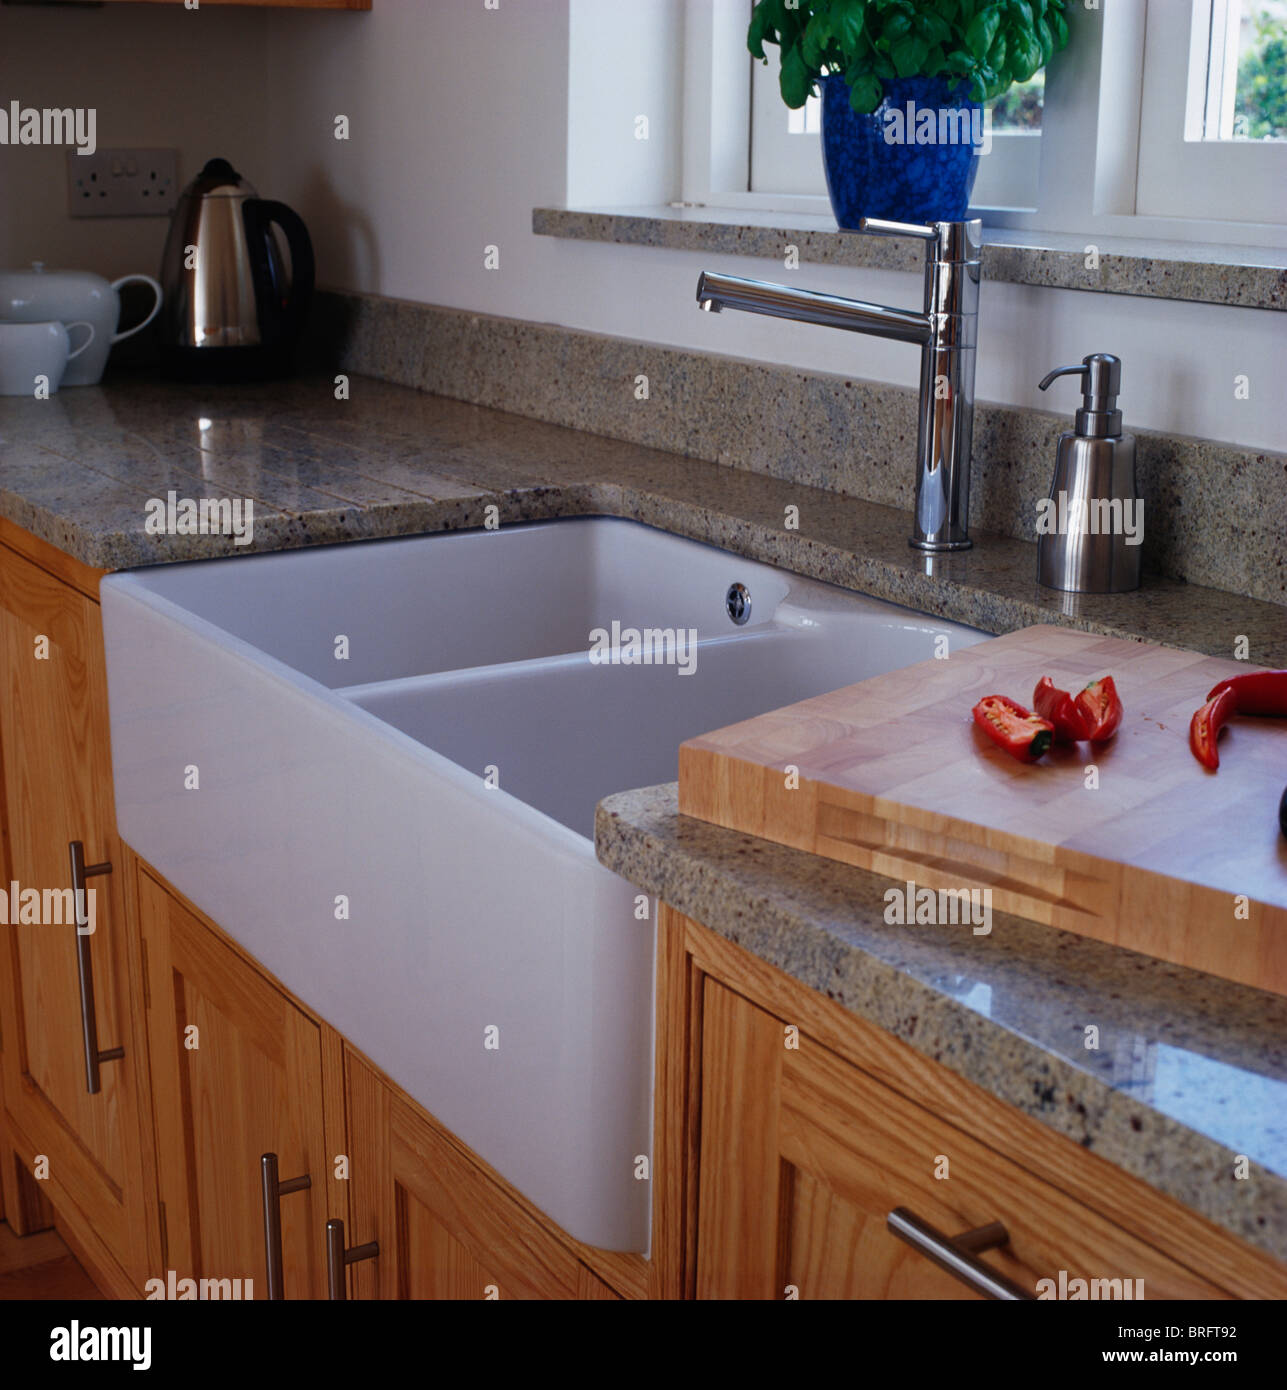 Close Up Of Double Belfast Sink And Chrome Taps In Modern Kitchen Stock Photo Royalty Free